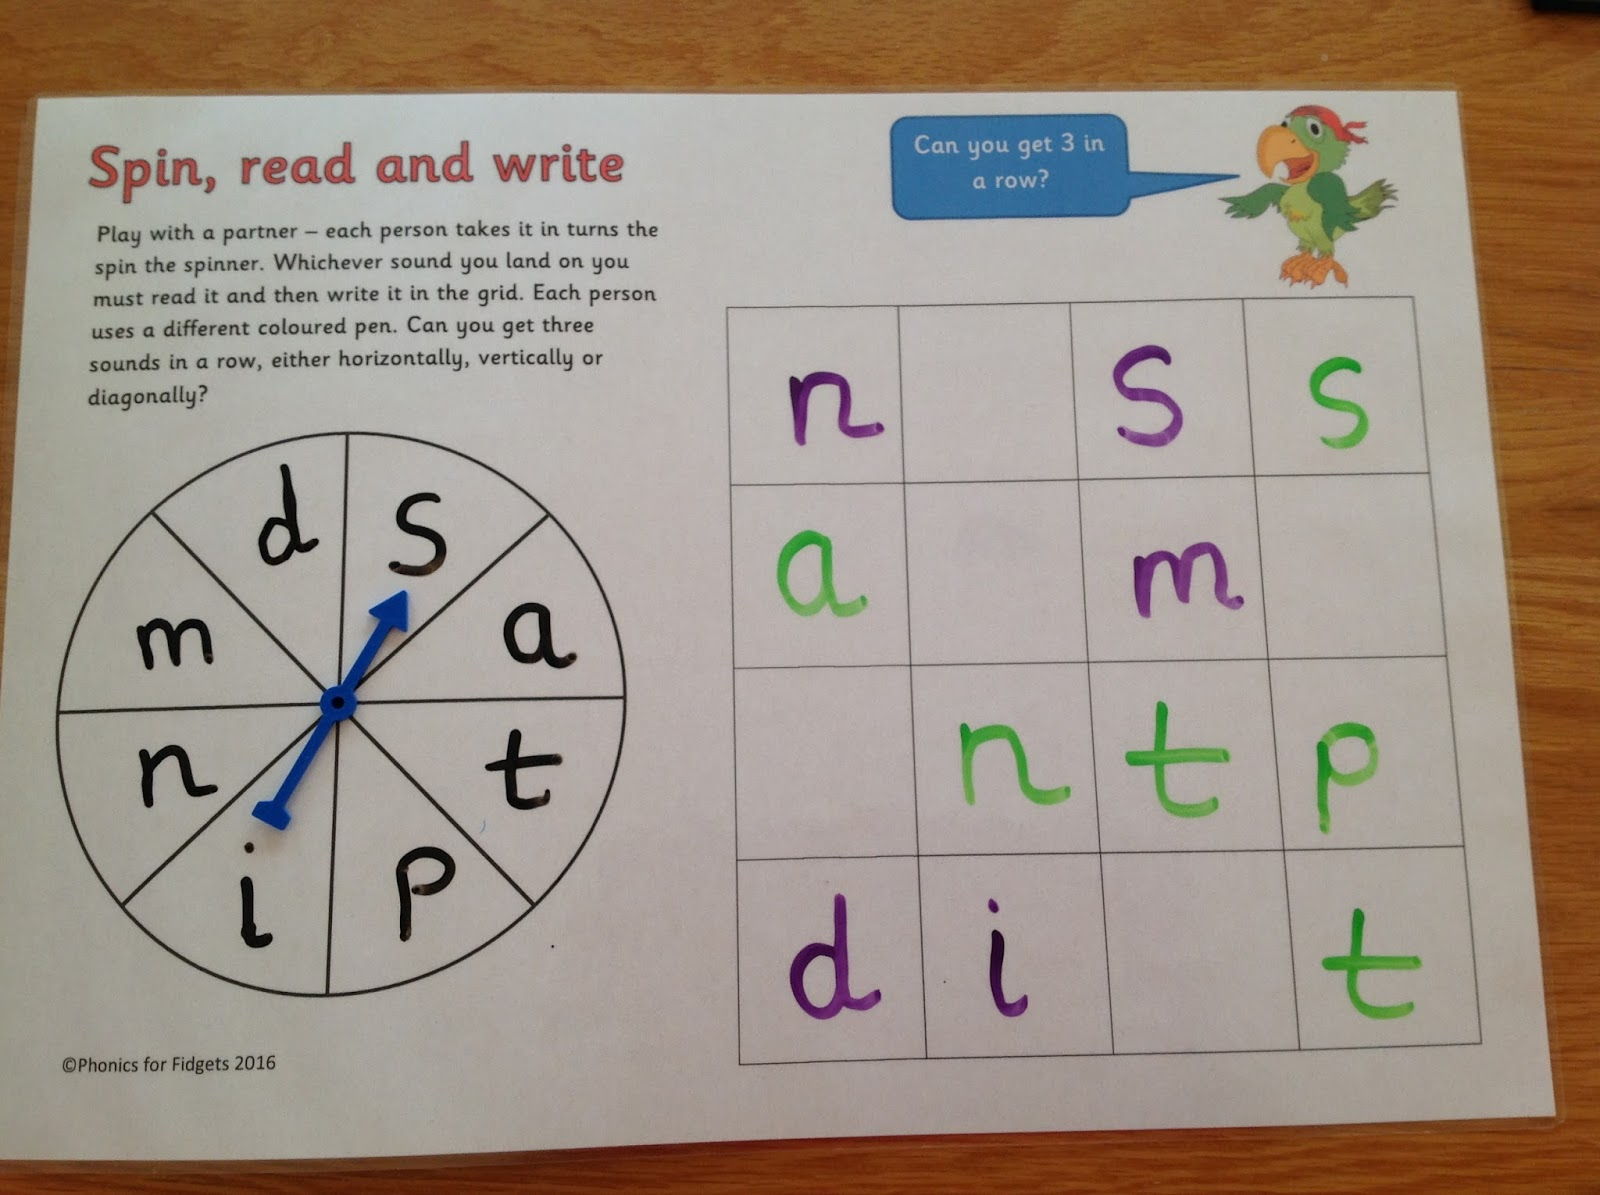 Phonics For Fidgets With Felix Spin Read And Write